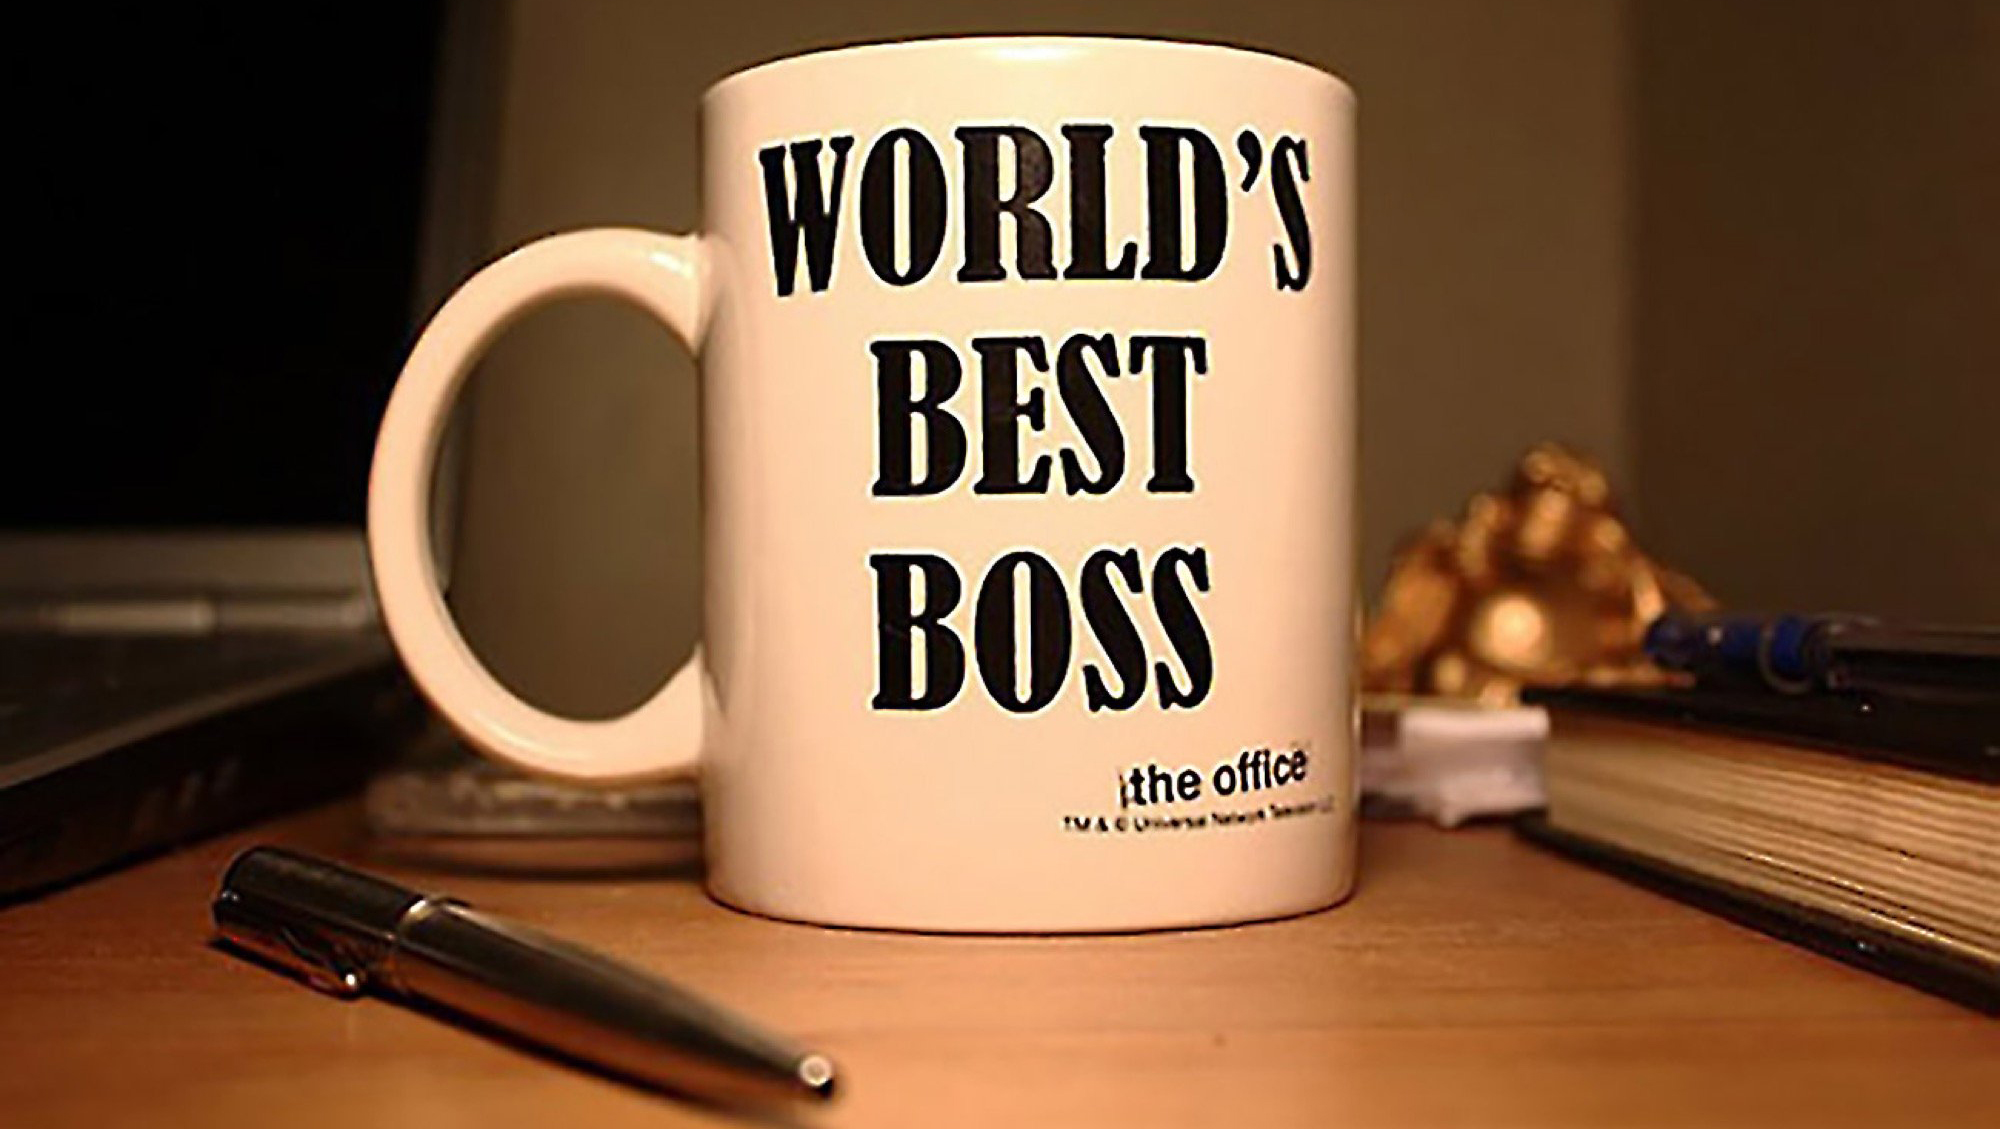 Are you a great boss?